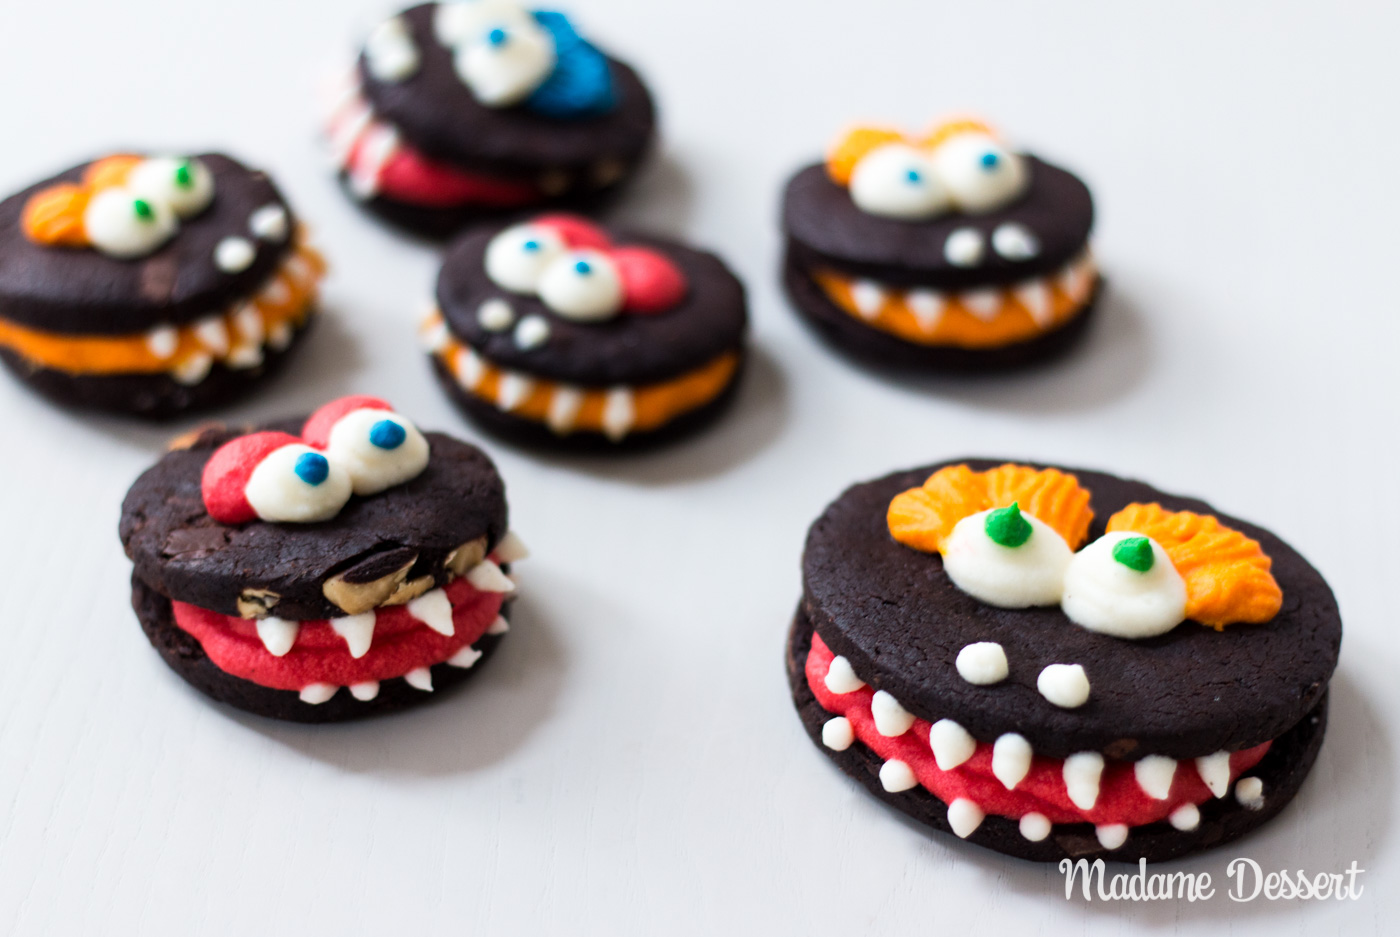 Monsterkekse | Halloween Rezepte | Madame Dessert-2740